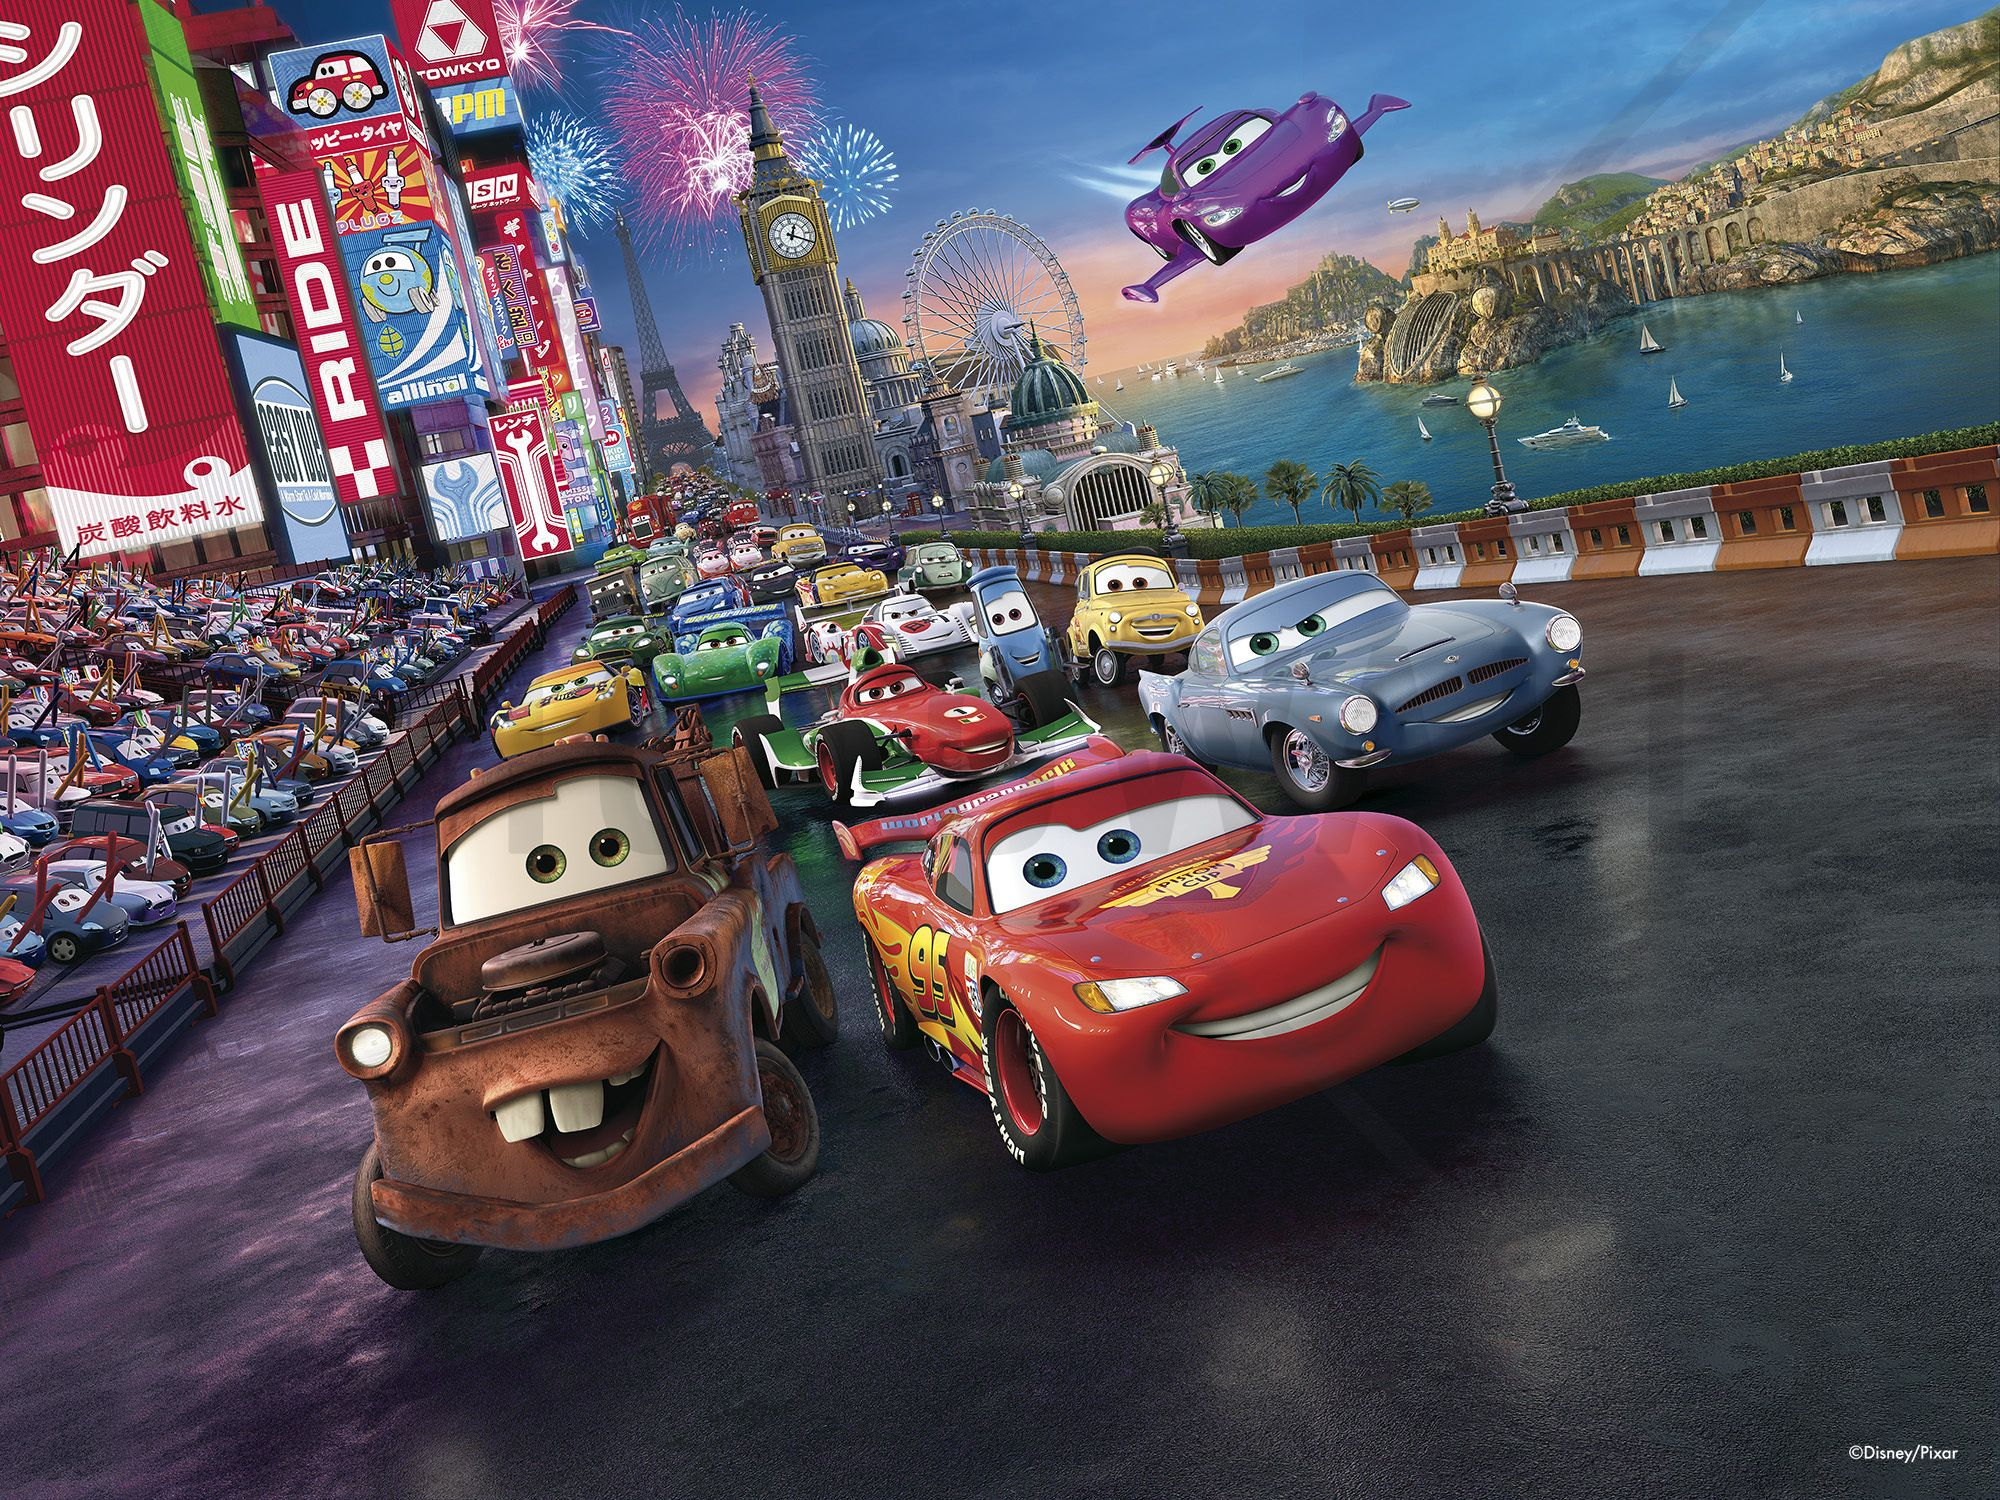 Disney cars wall murals wallpapers photowall portadas disney cars wall murals wallpapers photowall amipublicfo Image collections